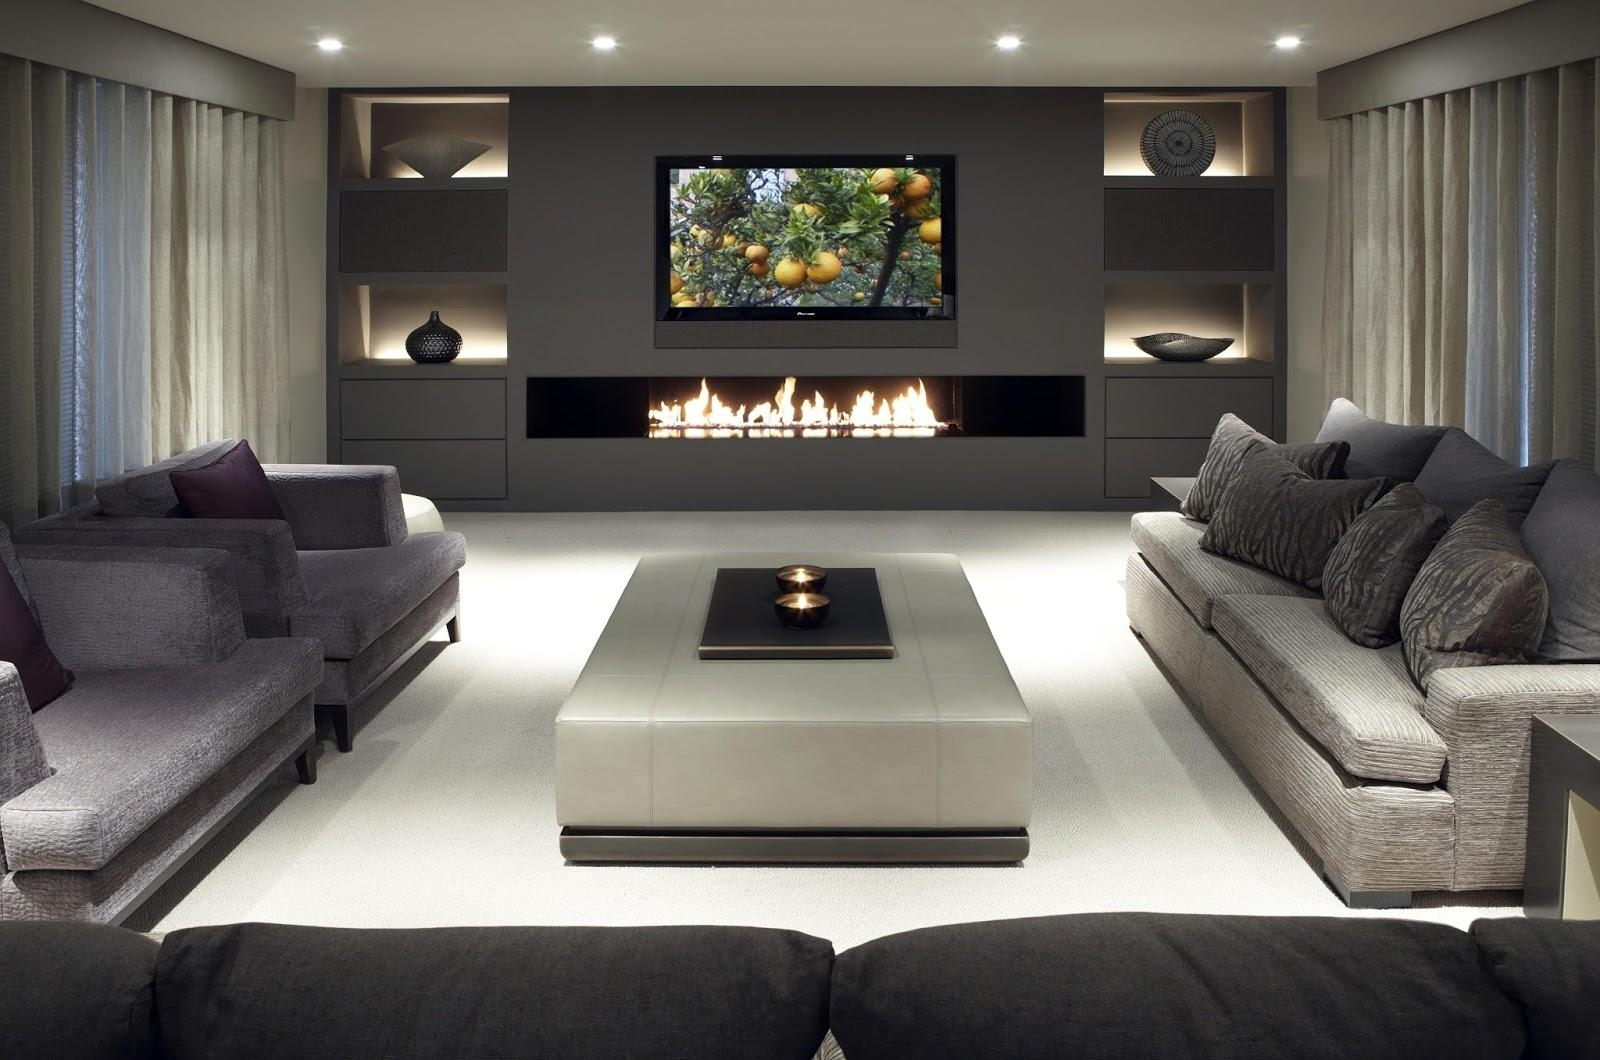 3 Media Room Ideas That Will Suit You | Luhomes In Media Room Sectional (Photo 15 of 20)